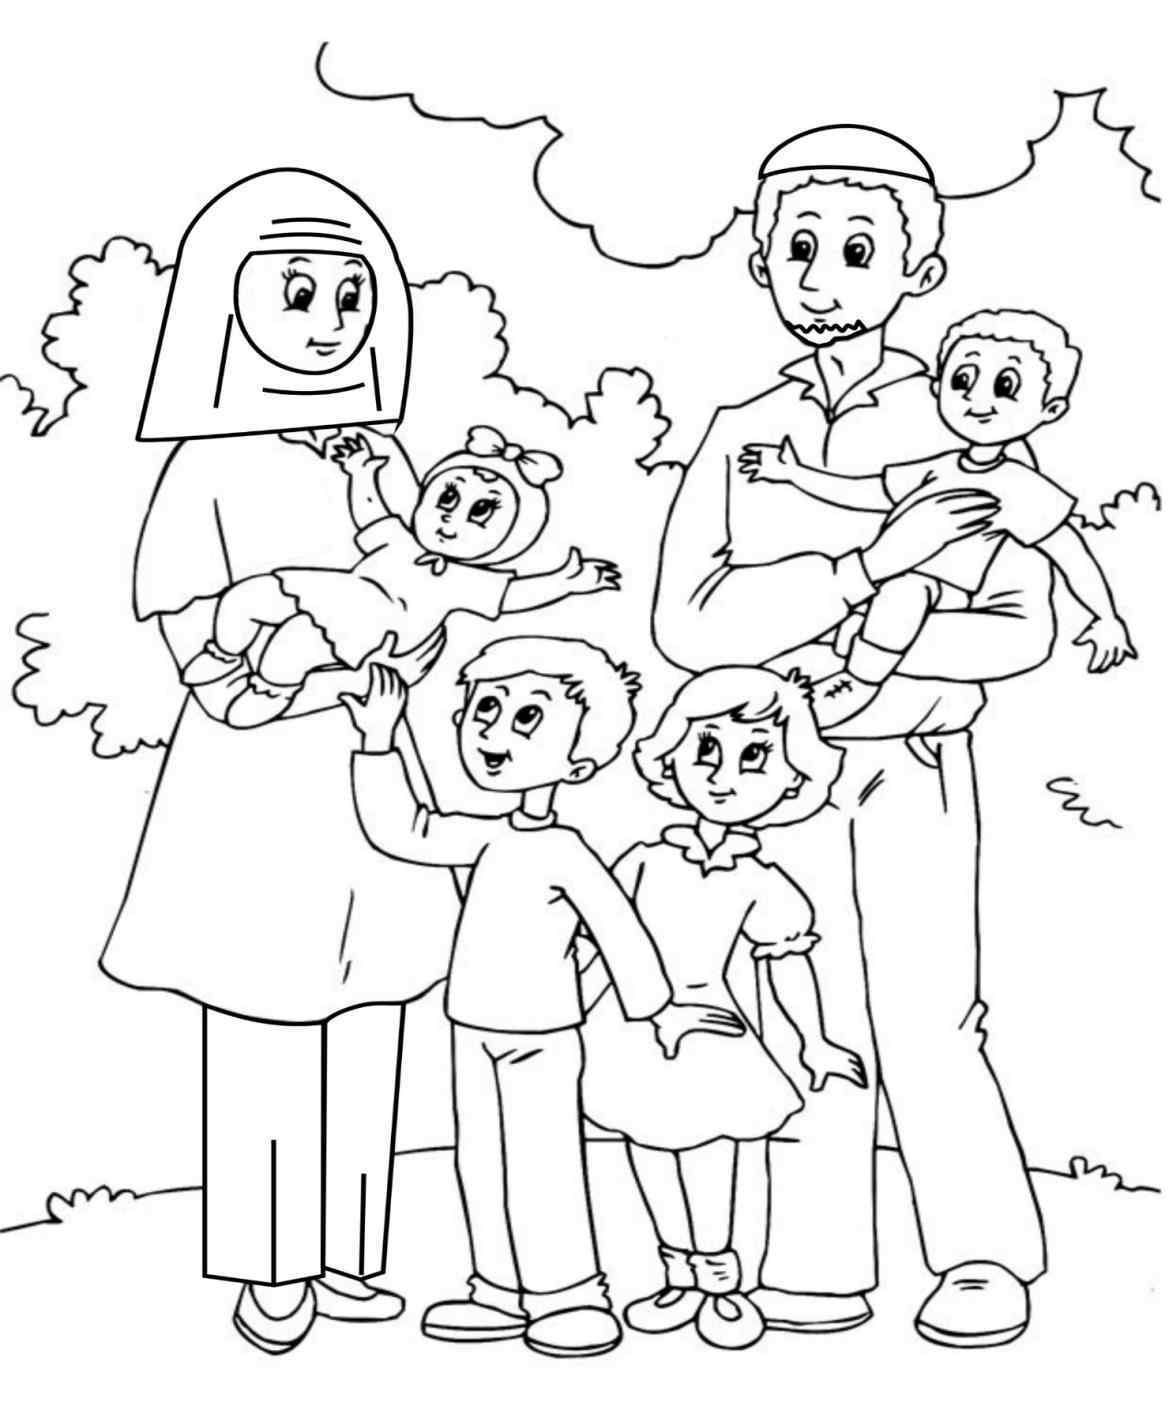 1169x1410 Evening Coloring Pages Family Family Coloring Pages For Adults